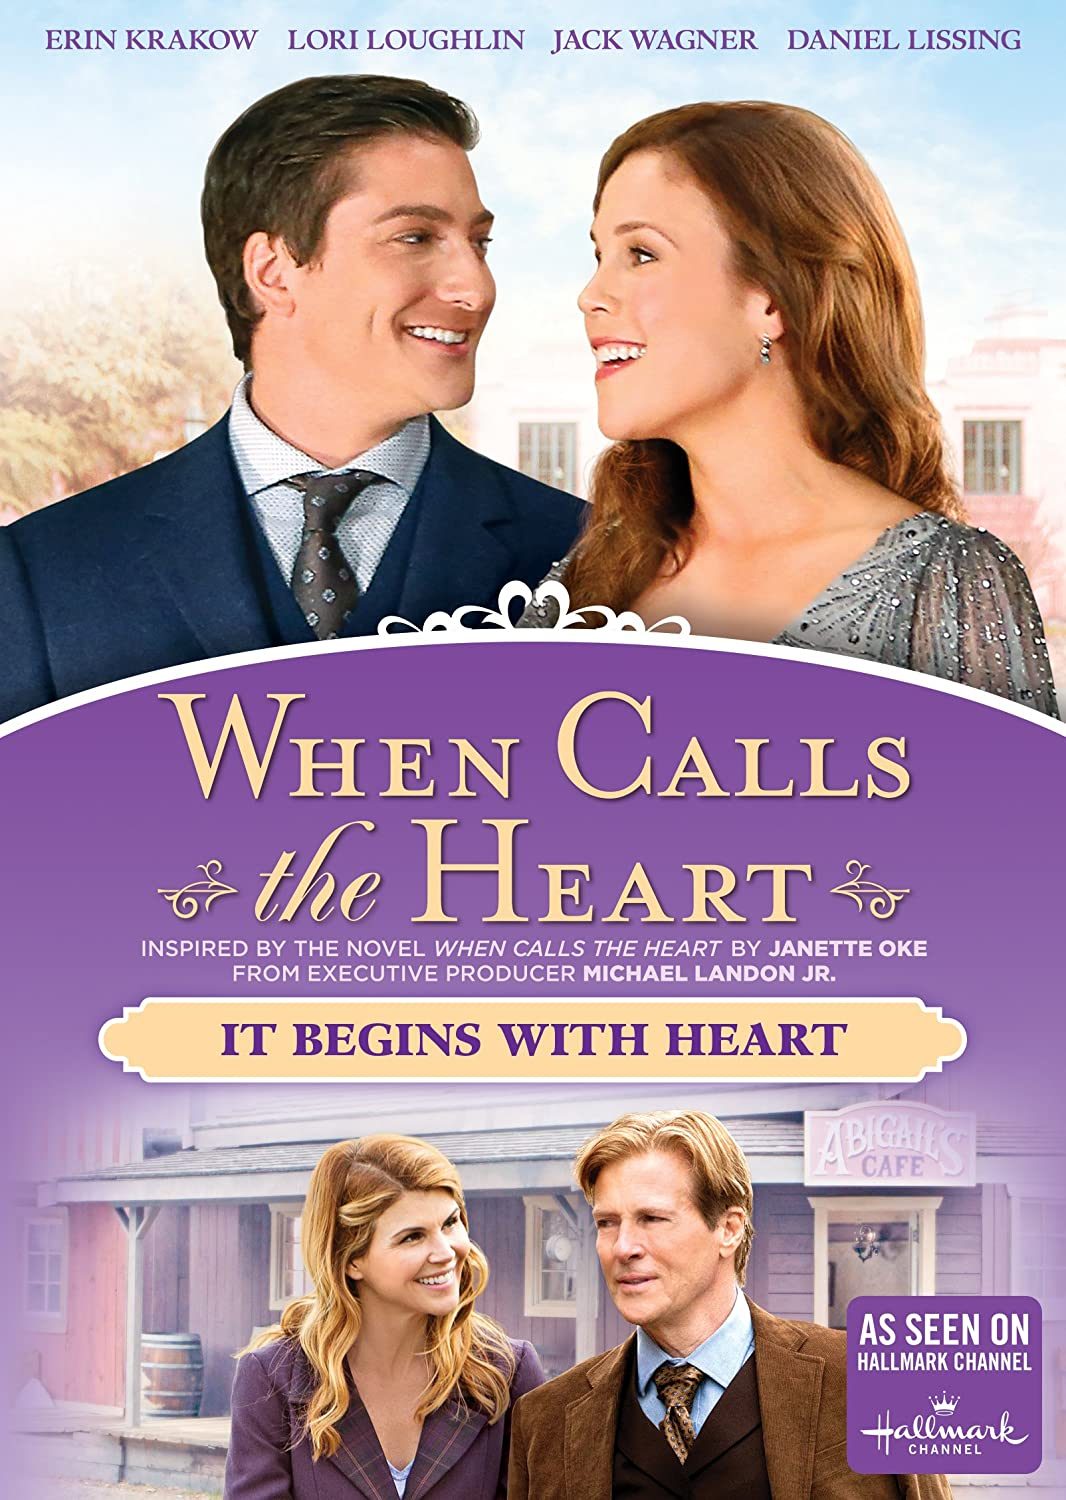 When calls the heart: it begins with heart - DVD Image